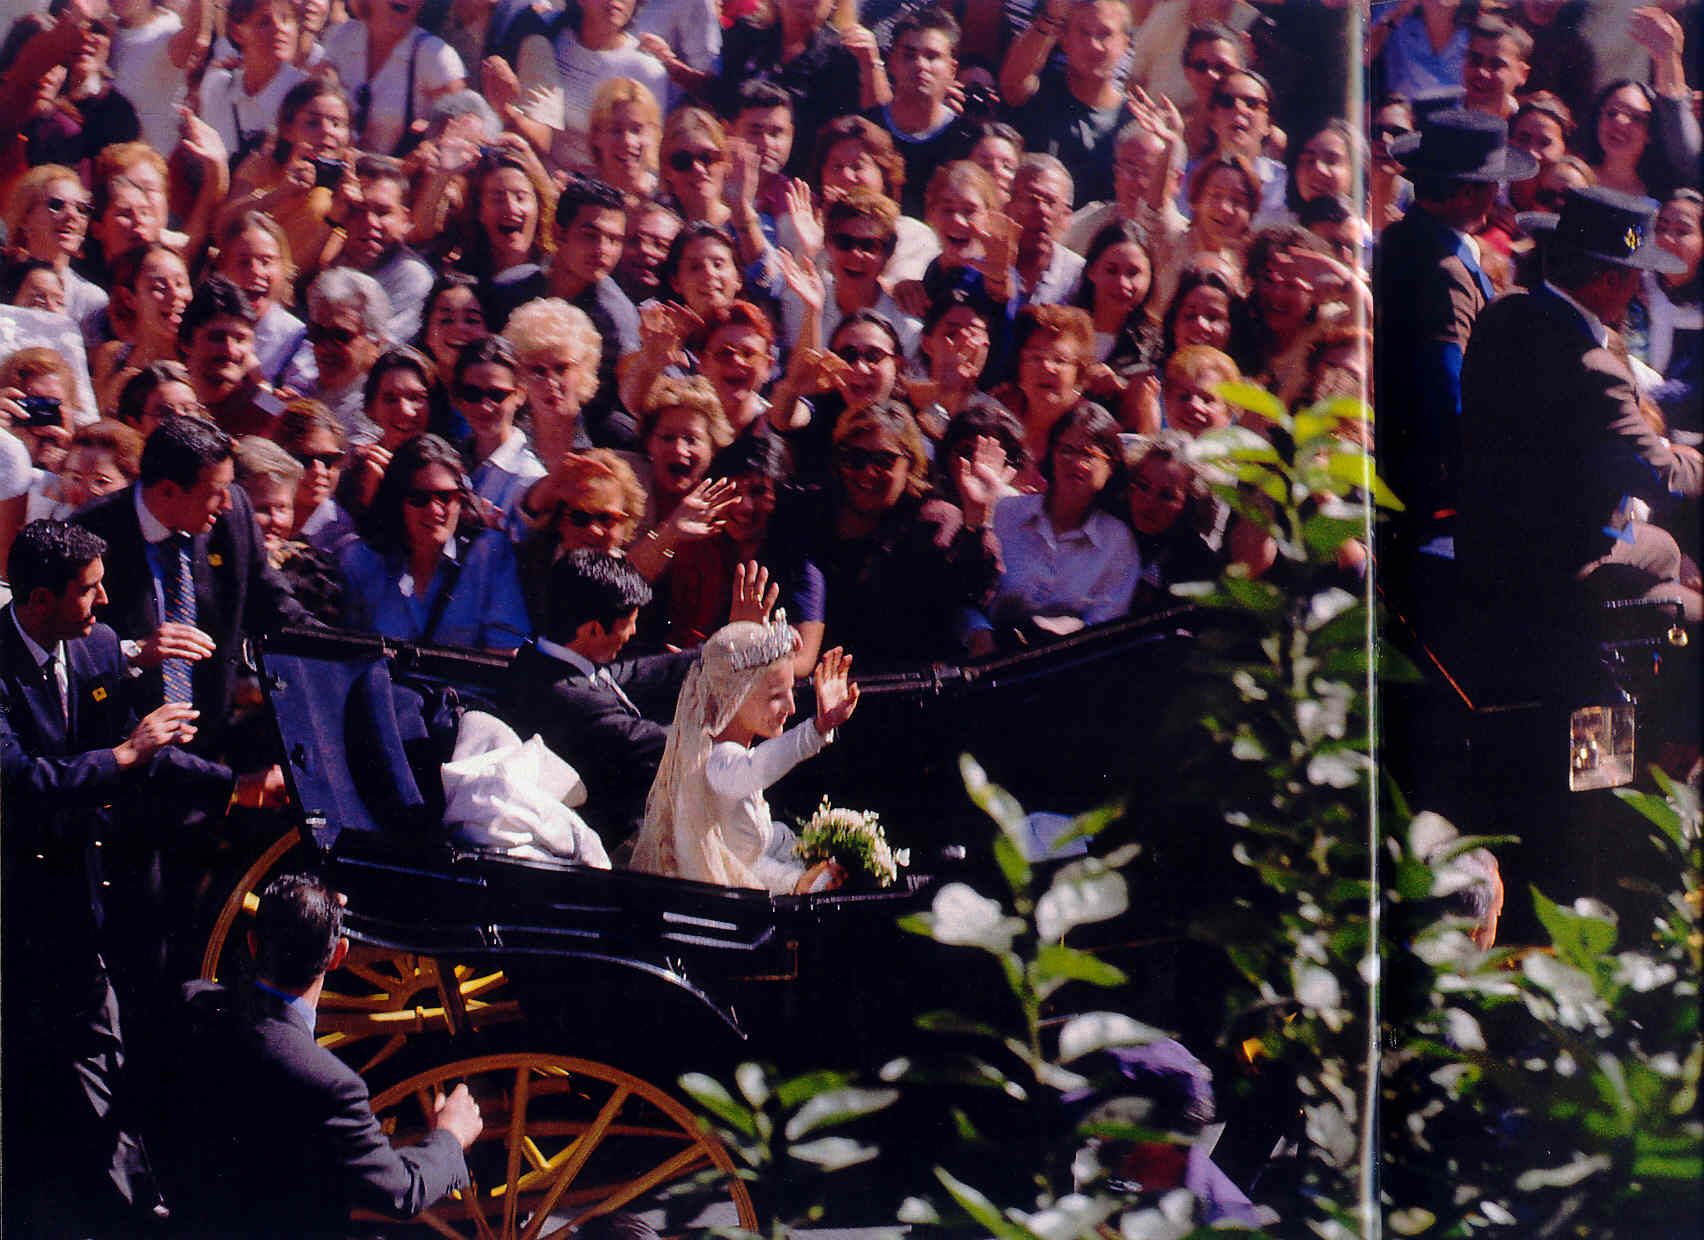 crowds of well-wishers greet the newly weds